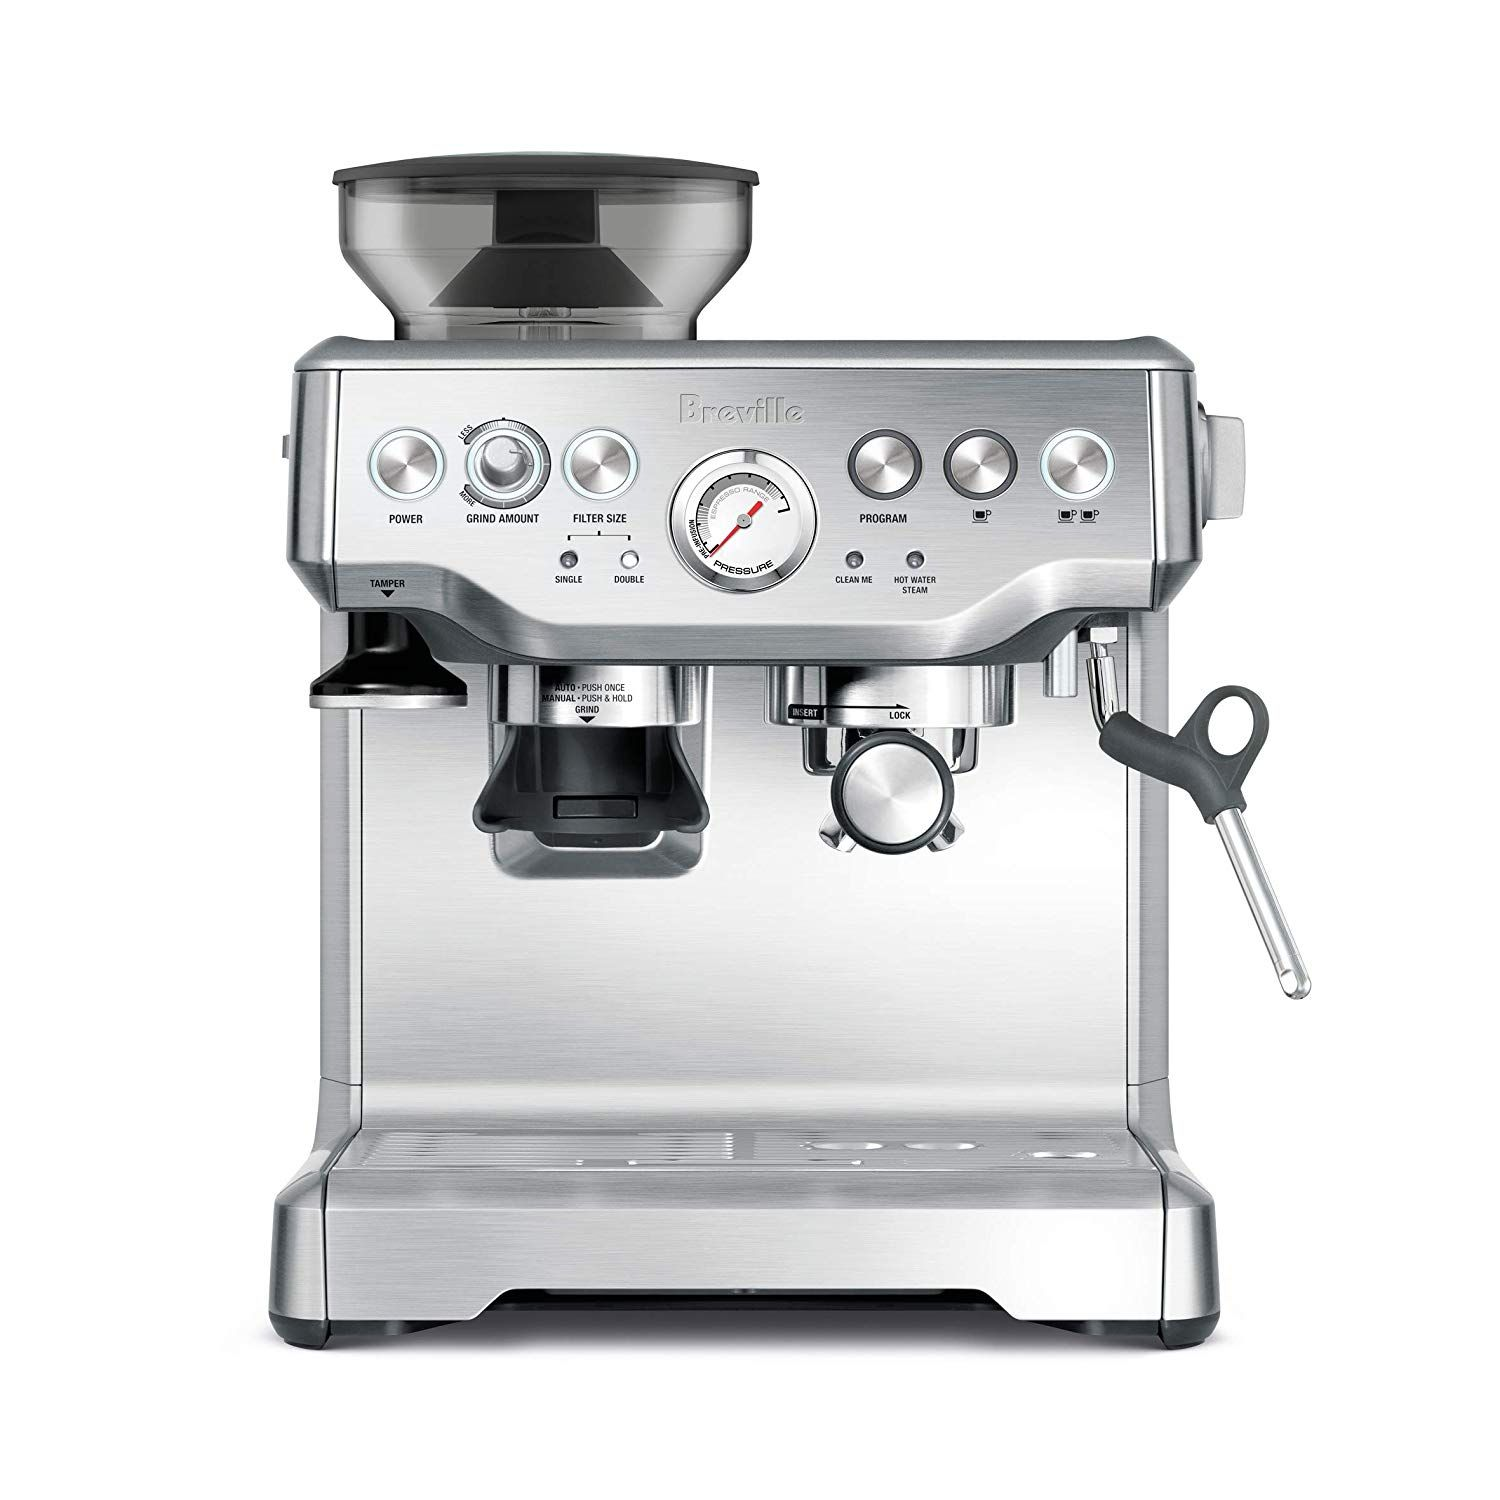 Breville Barista Express Espresso Machine Brushed Stainless Steel Bes870bss By Breville Breville Barista Express Espresso Breville